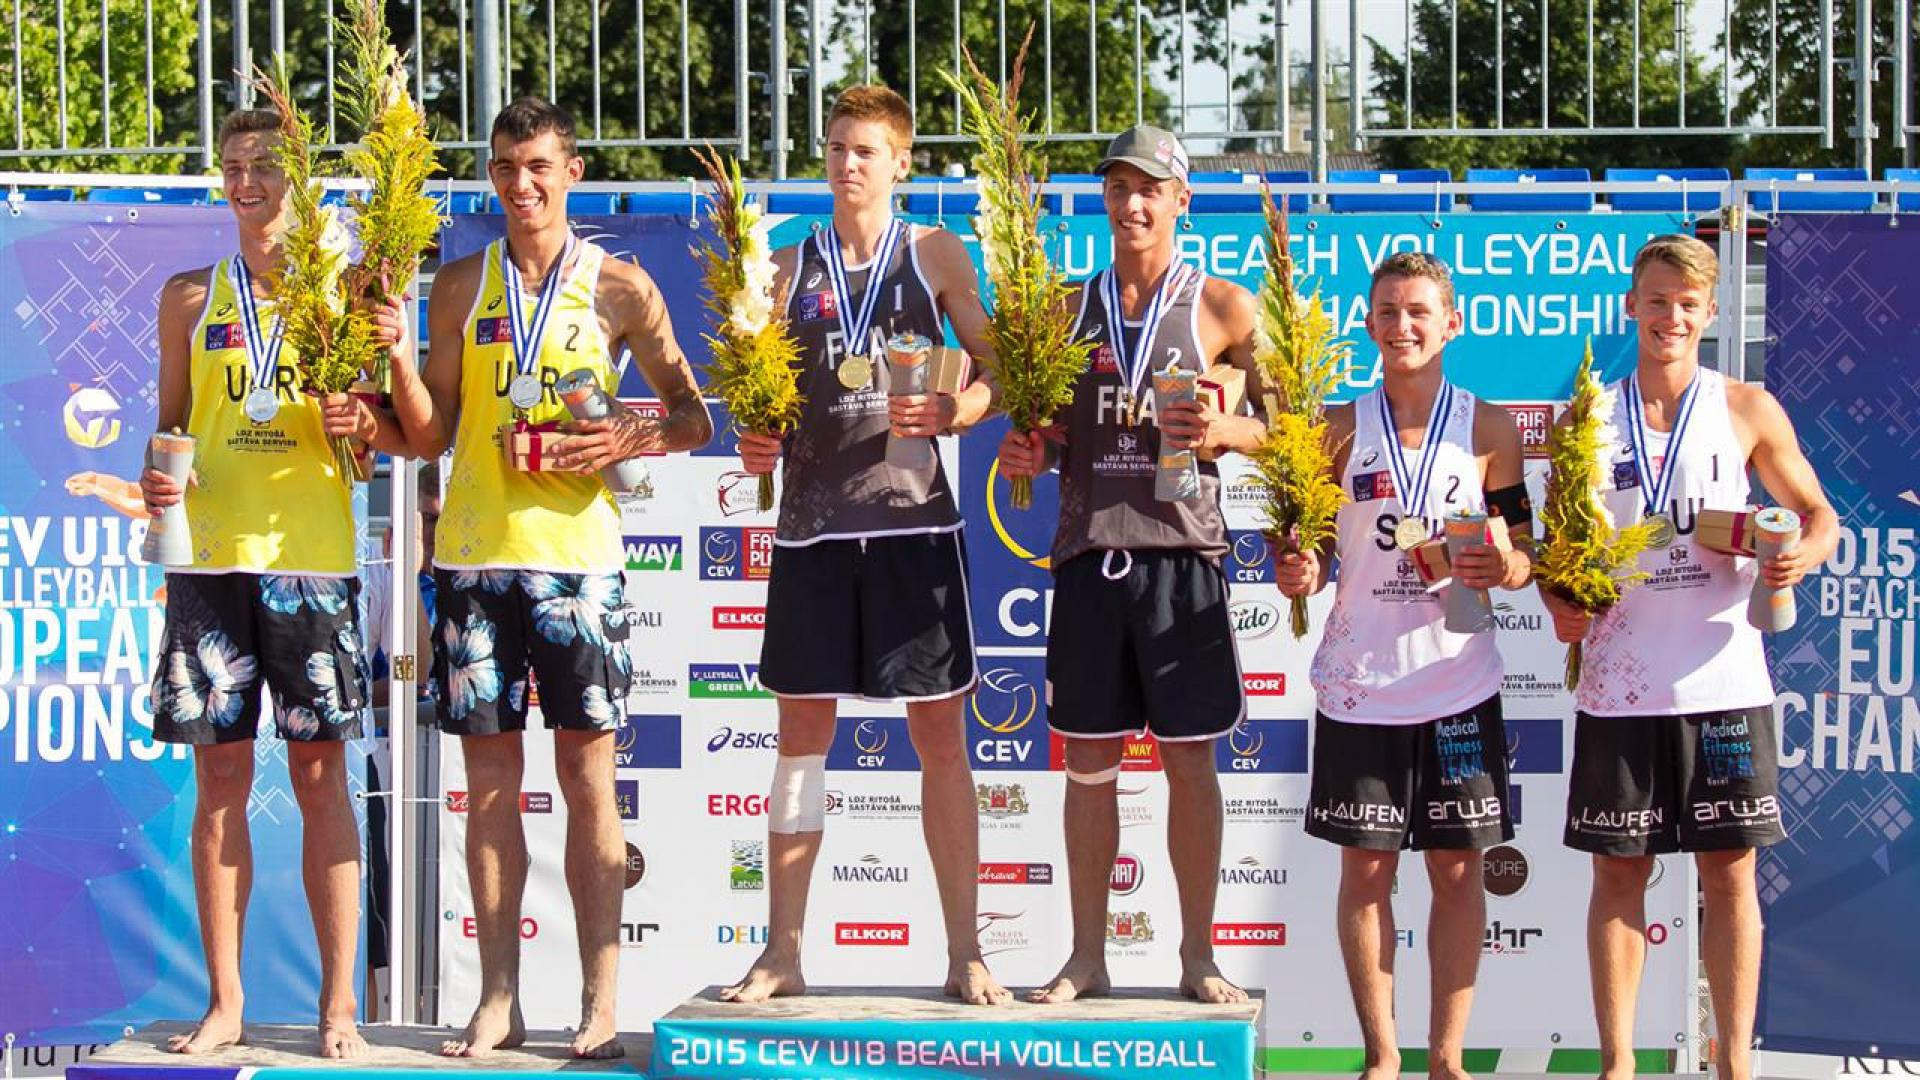 Cev U18 Beach Volleyball Europameisterschaft Laola1tv